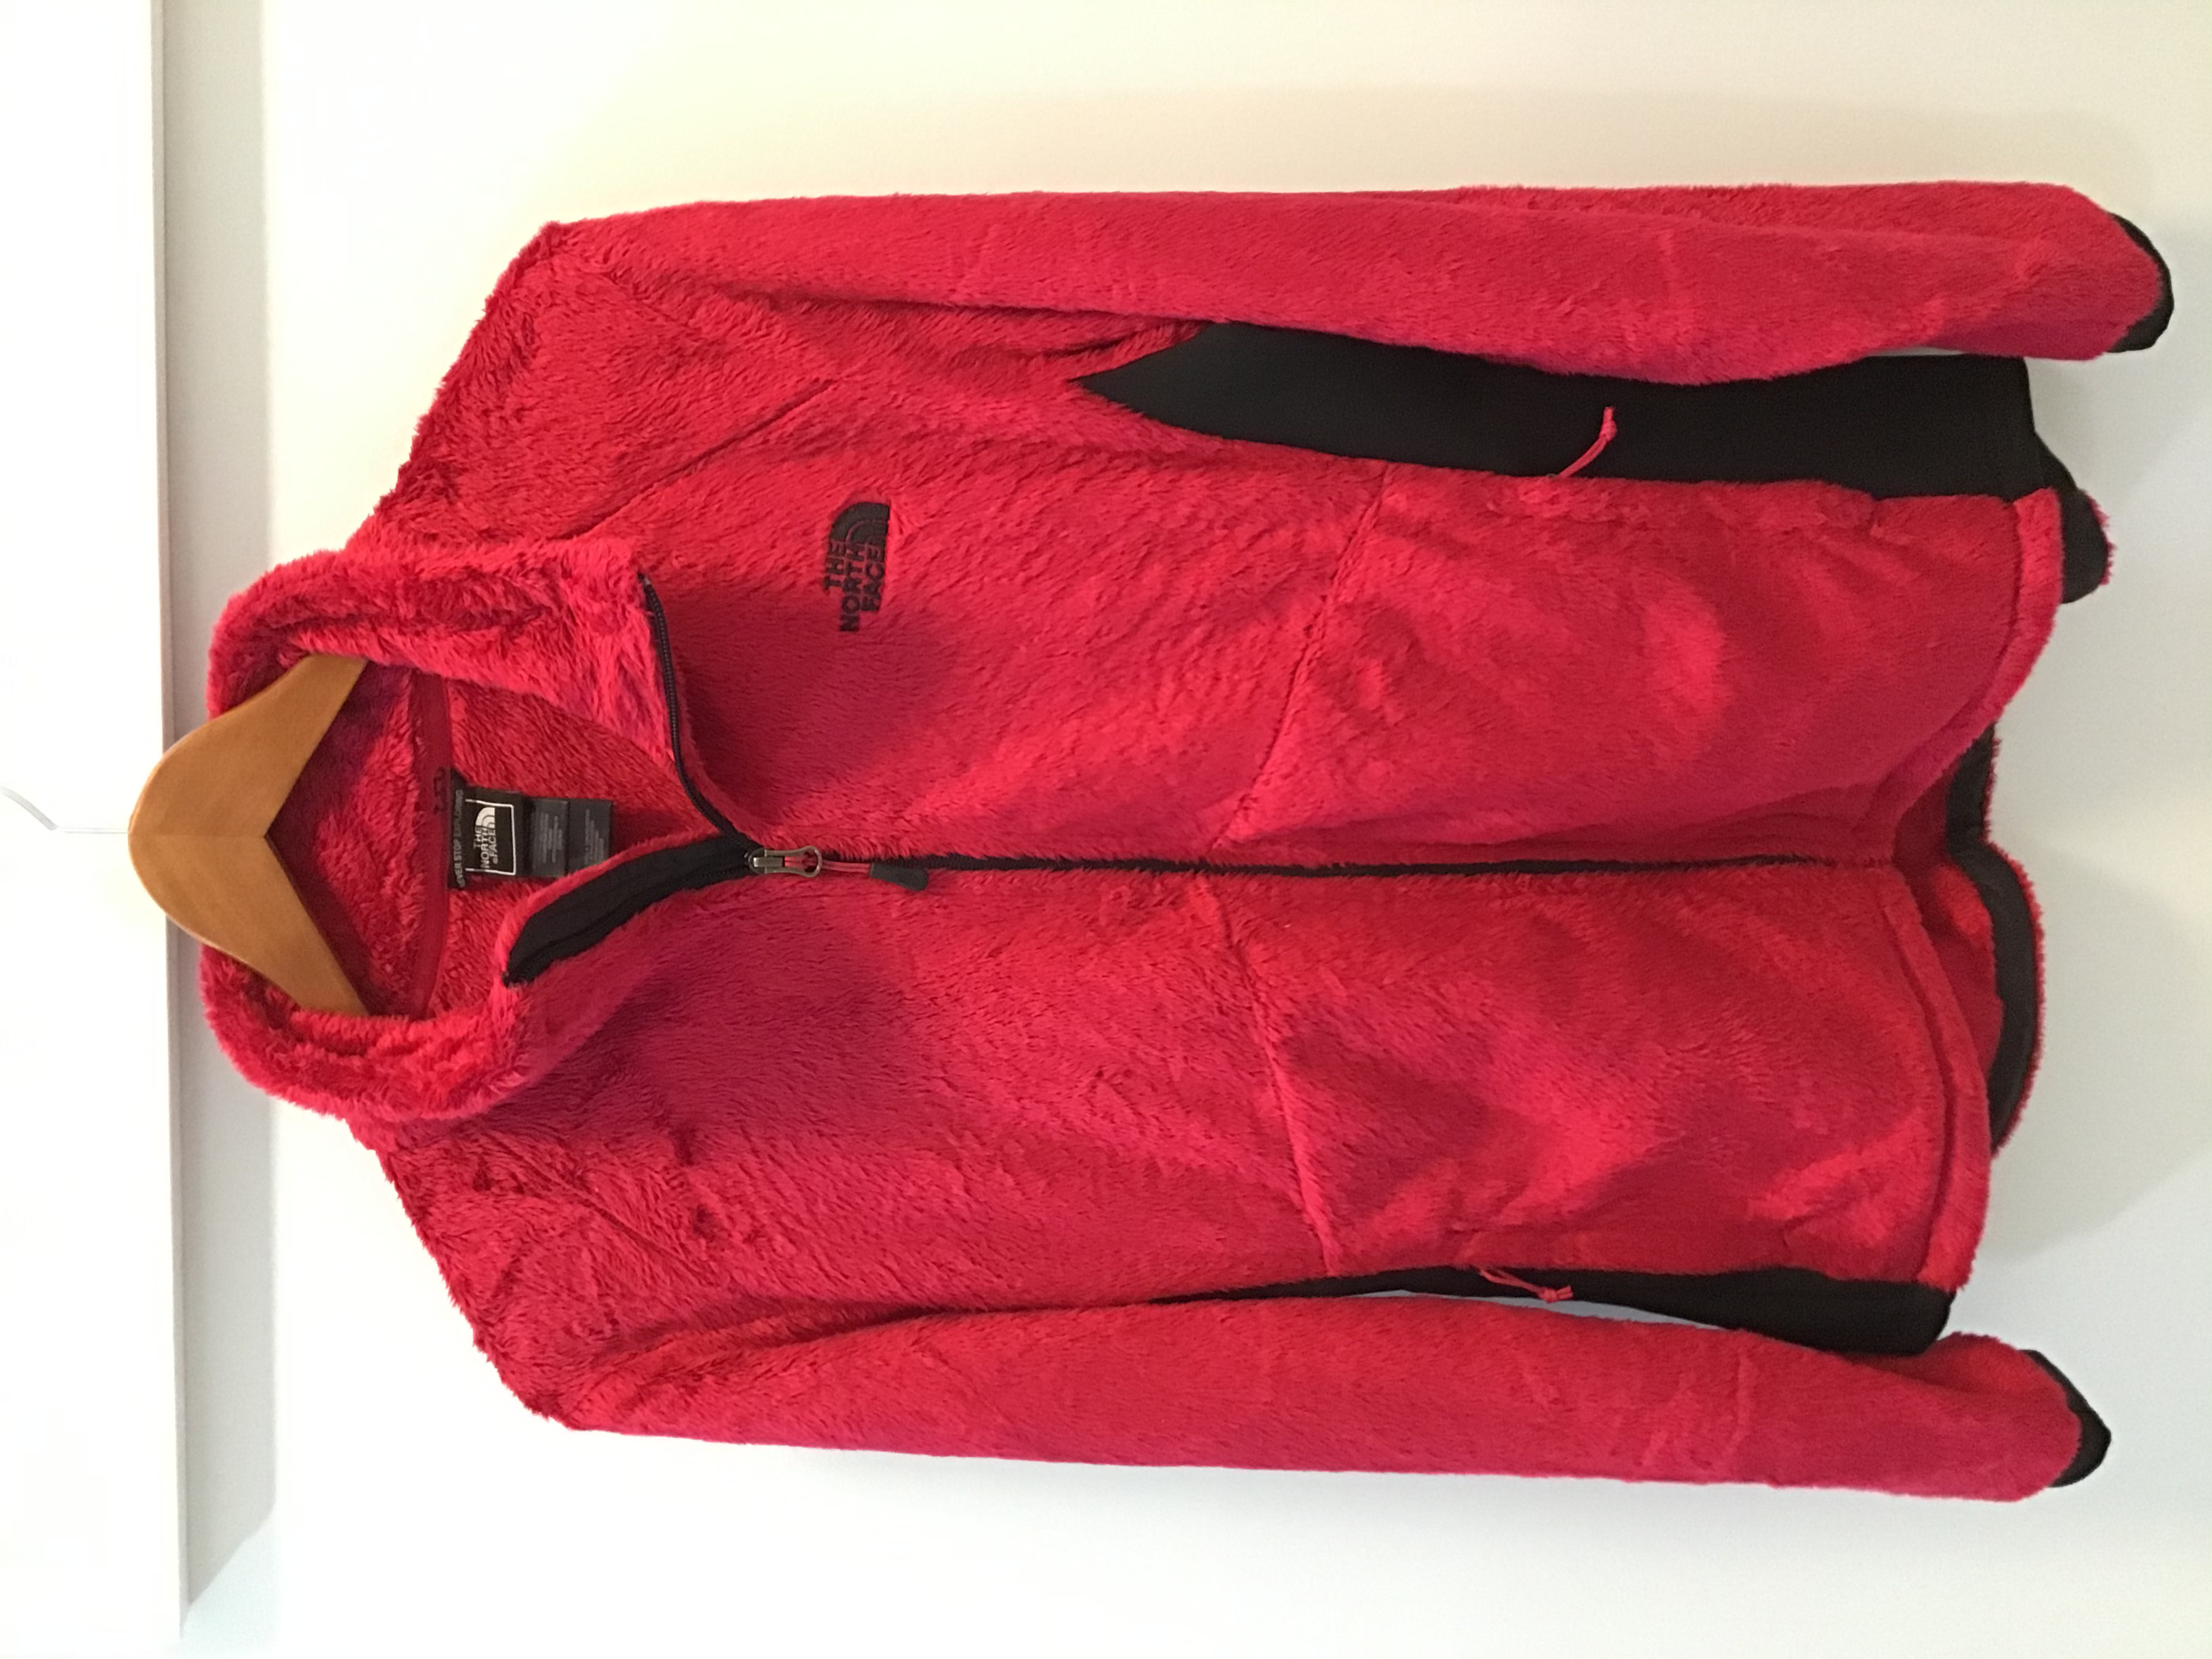 NORTHFACE WOMEN'S OSITO HYBRID FULL-ZIP Fleece JACKET